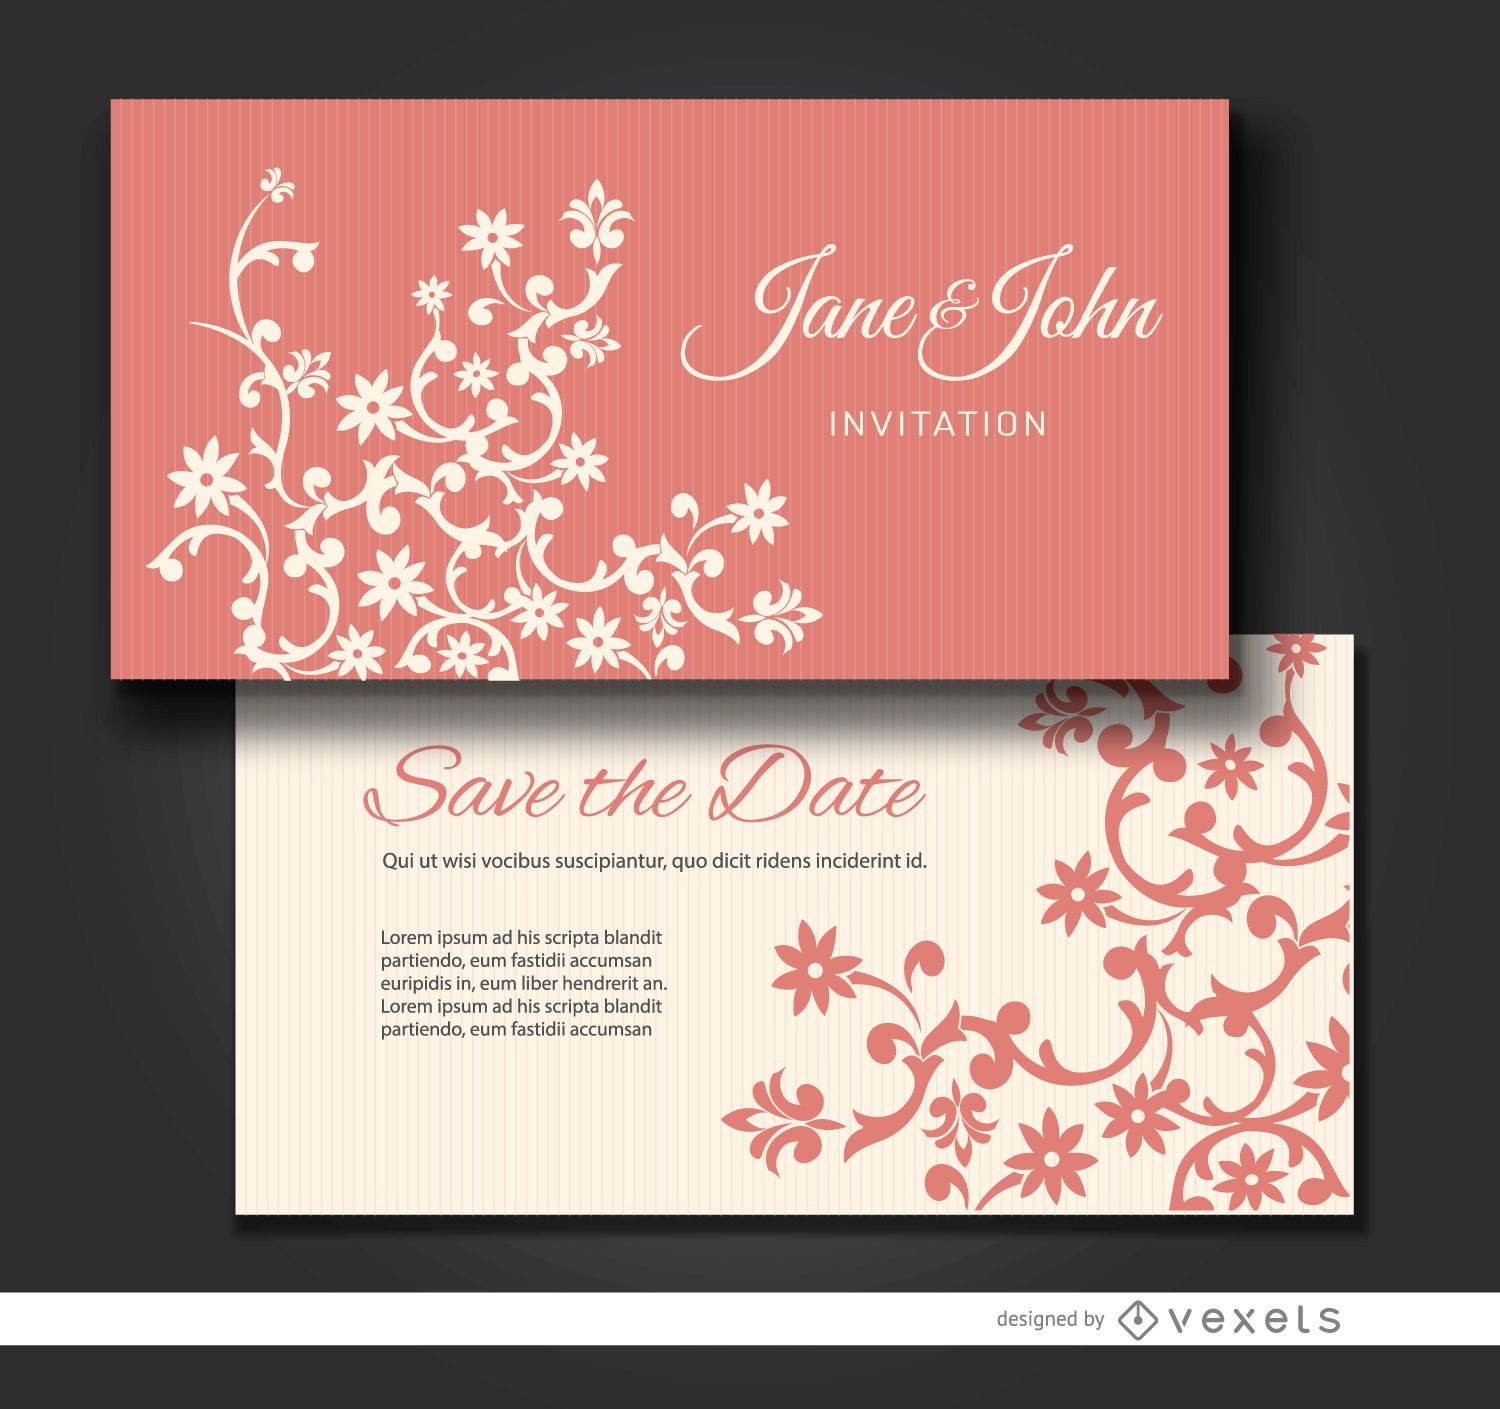 Getting Married Floral Invitation: Floral Marriage Invitation Sleeve